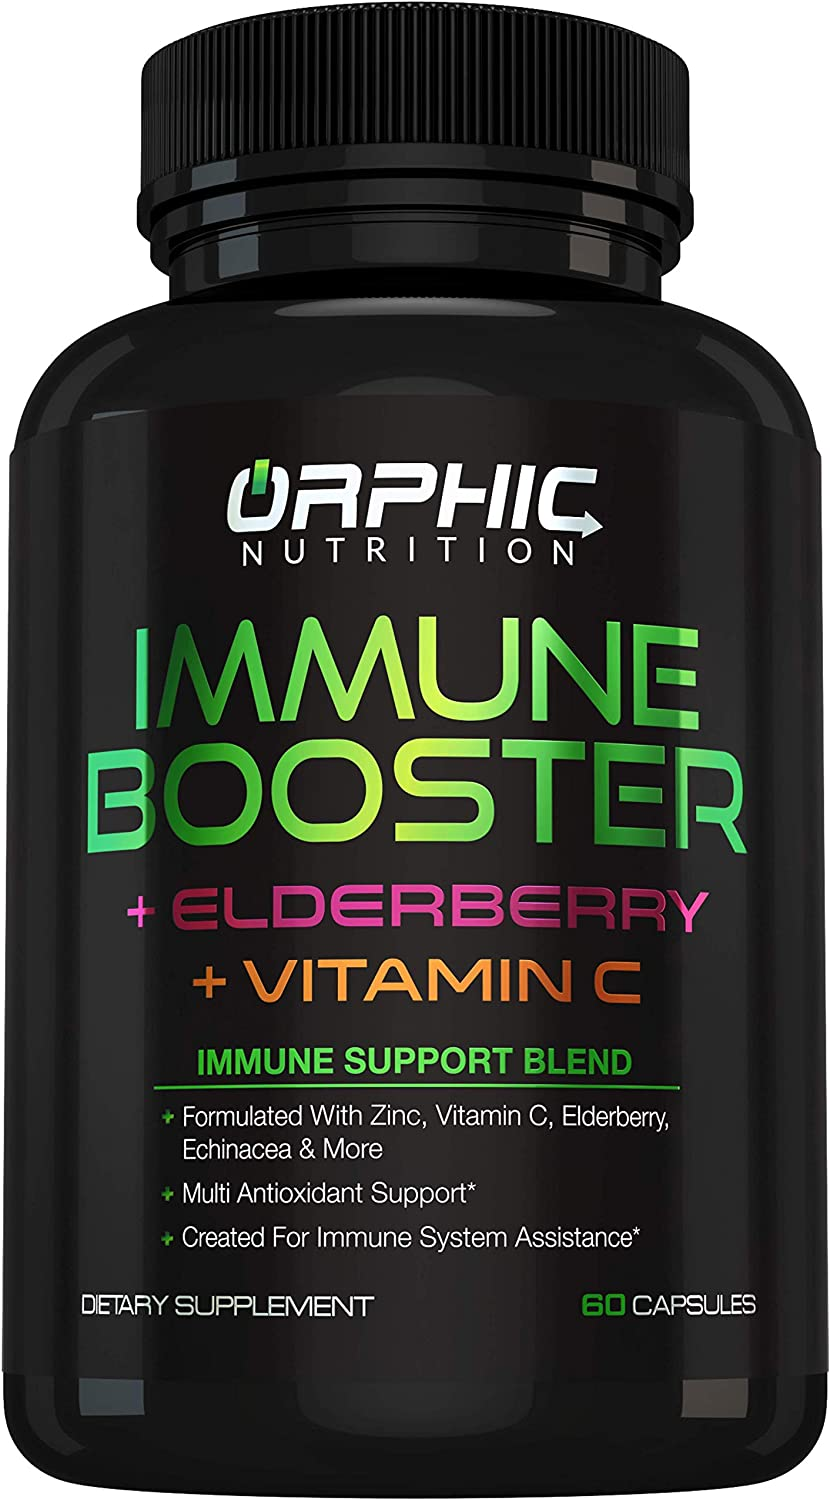 Immune Support with Elderberry Zinc Vitamin C & More - Natural Daily Immune System Supplement & Immunity Booster - Improves Energy & Health - with Powerful Antioxidants - 30 Servings